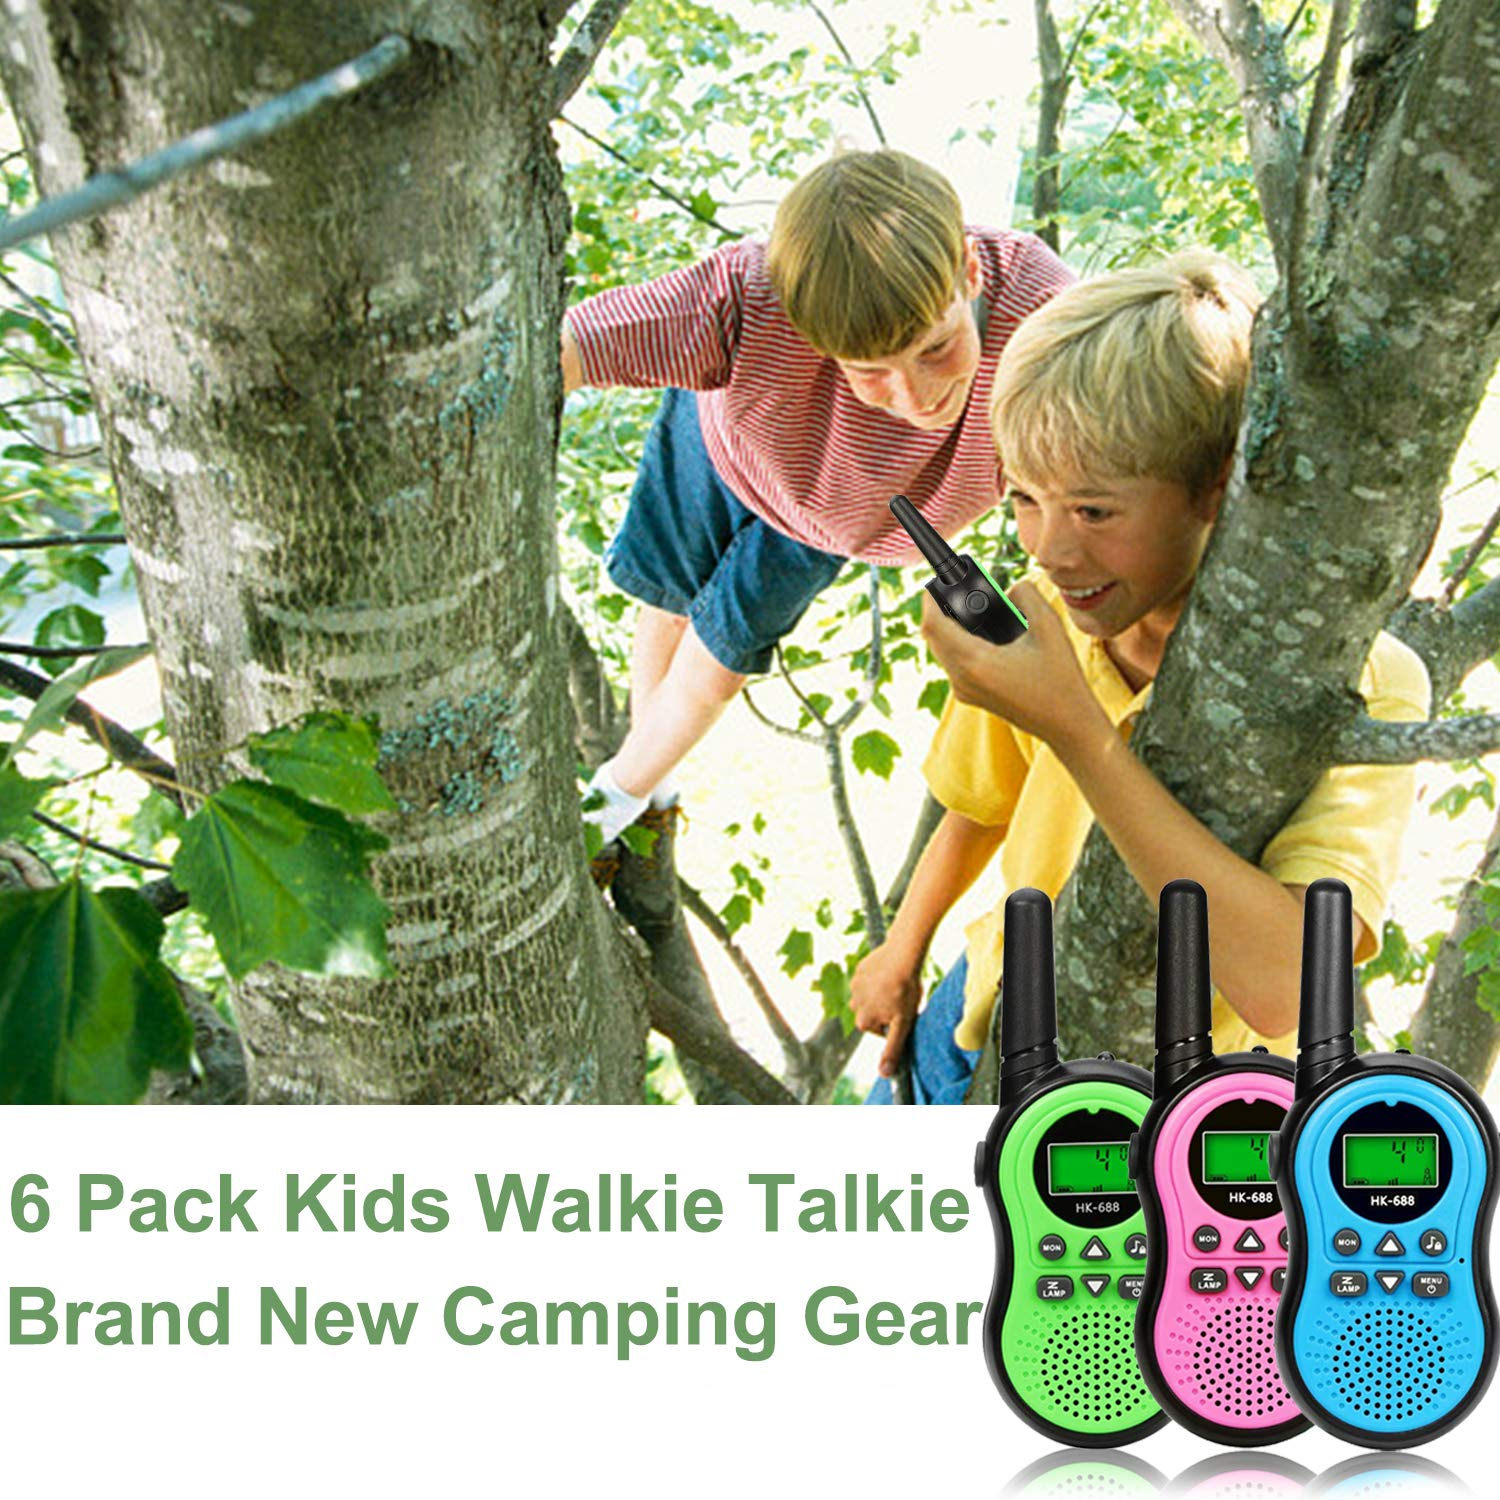 6 Pack Kids Walkie Talkies Outdoor Indoor Toys for Boy Girl 22 Channels Two Way Range Up to 3 Miles Flashlight FRS Radio Handheld Walkie Talkie Adventure Camping Game Back to School Birthday Best Gift by Camlinbo (Image #7)